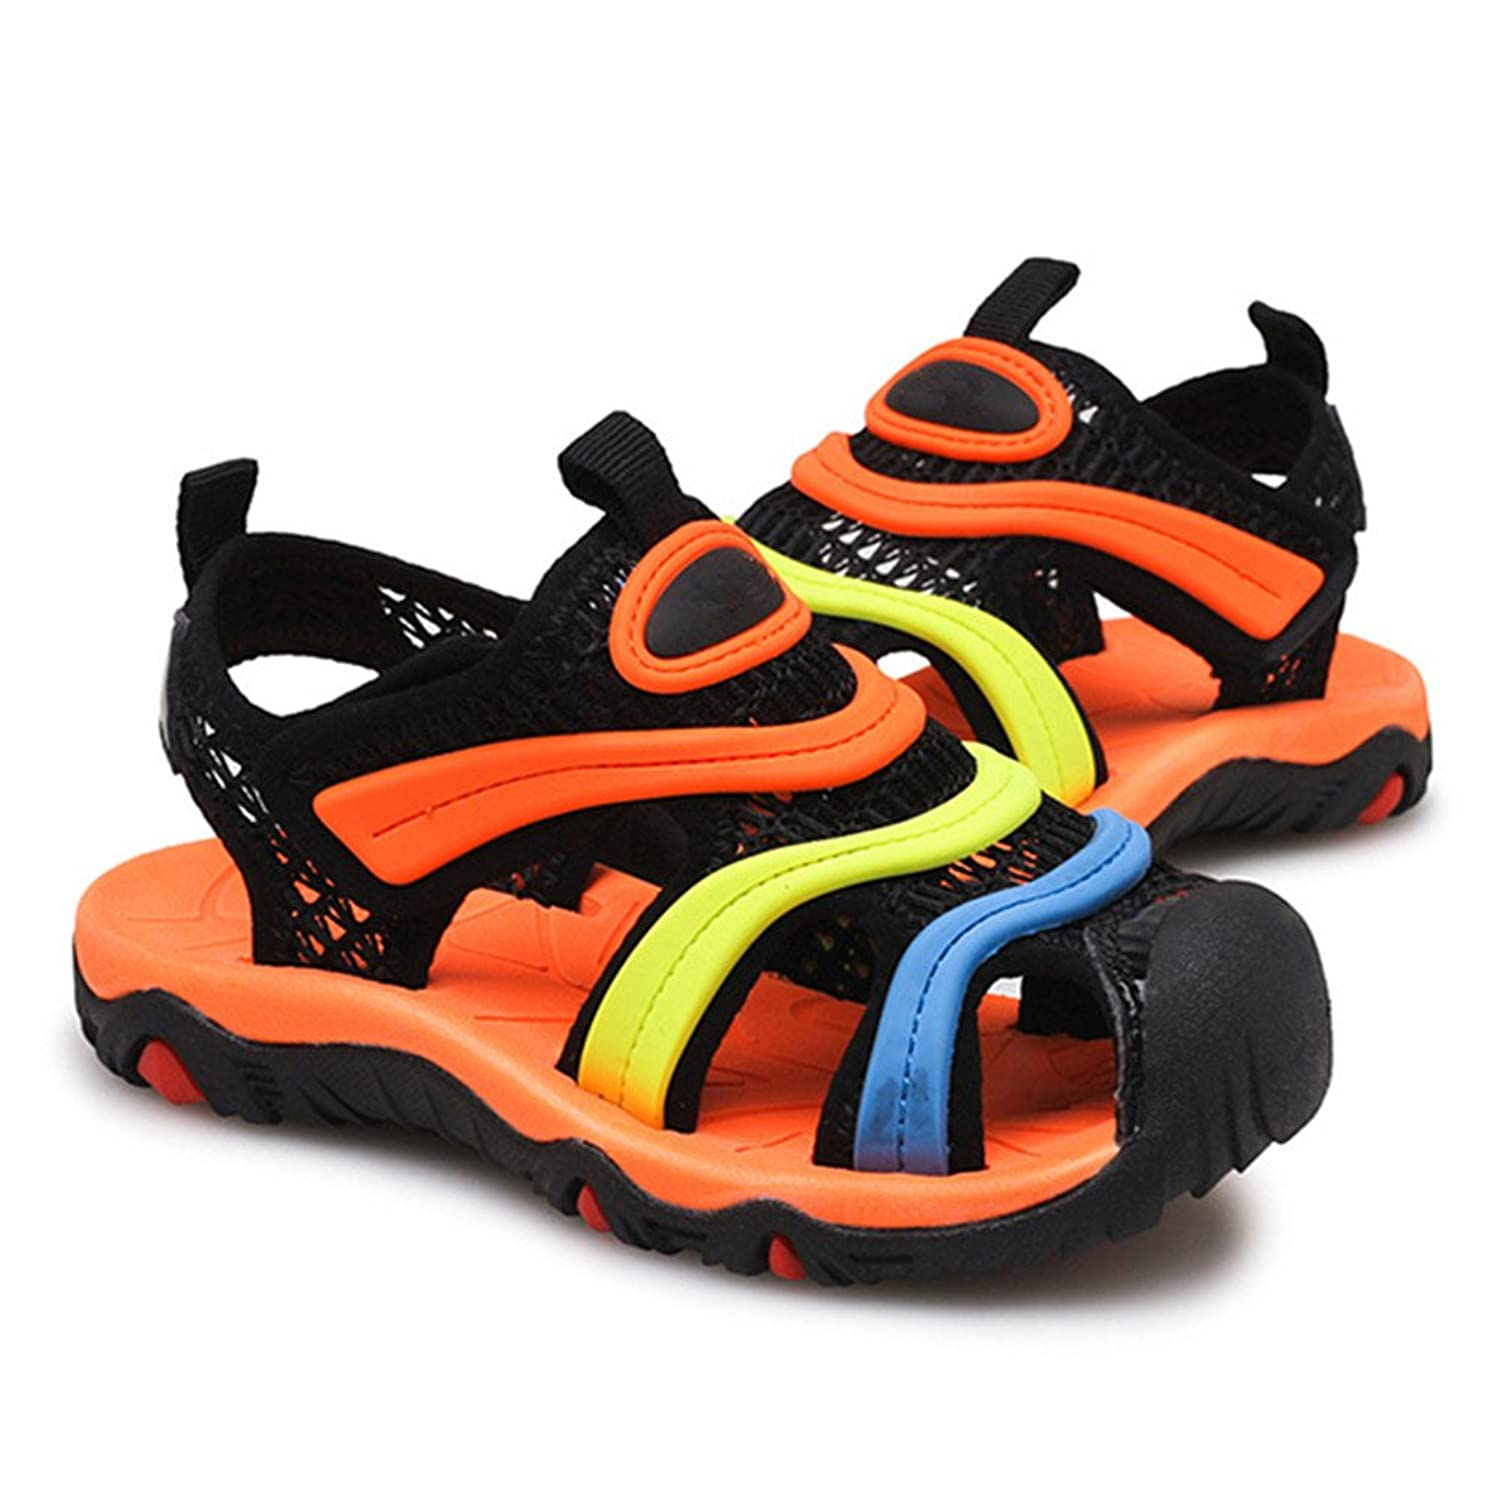 Adventure Seeker Mesh Sandal Convenient Velcro Rubber Sole Summer Shoes for  4-12Years Boys Girls Unisex-Child: Amazon.ca: Shoes & Handbags